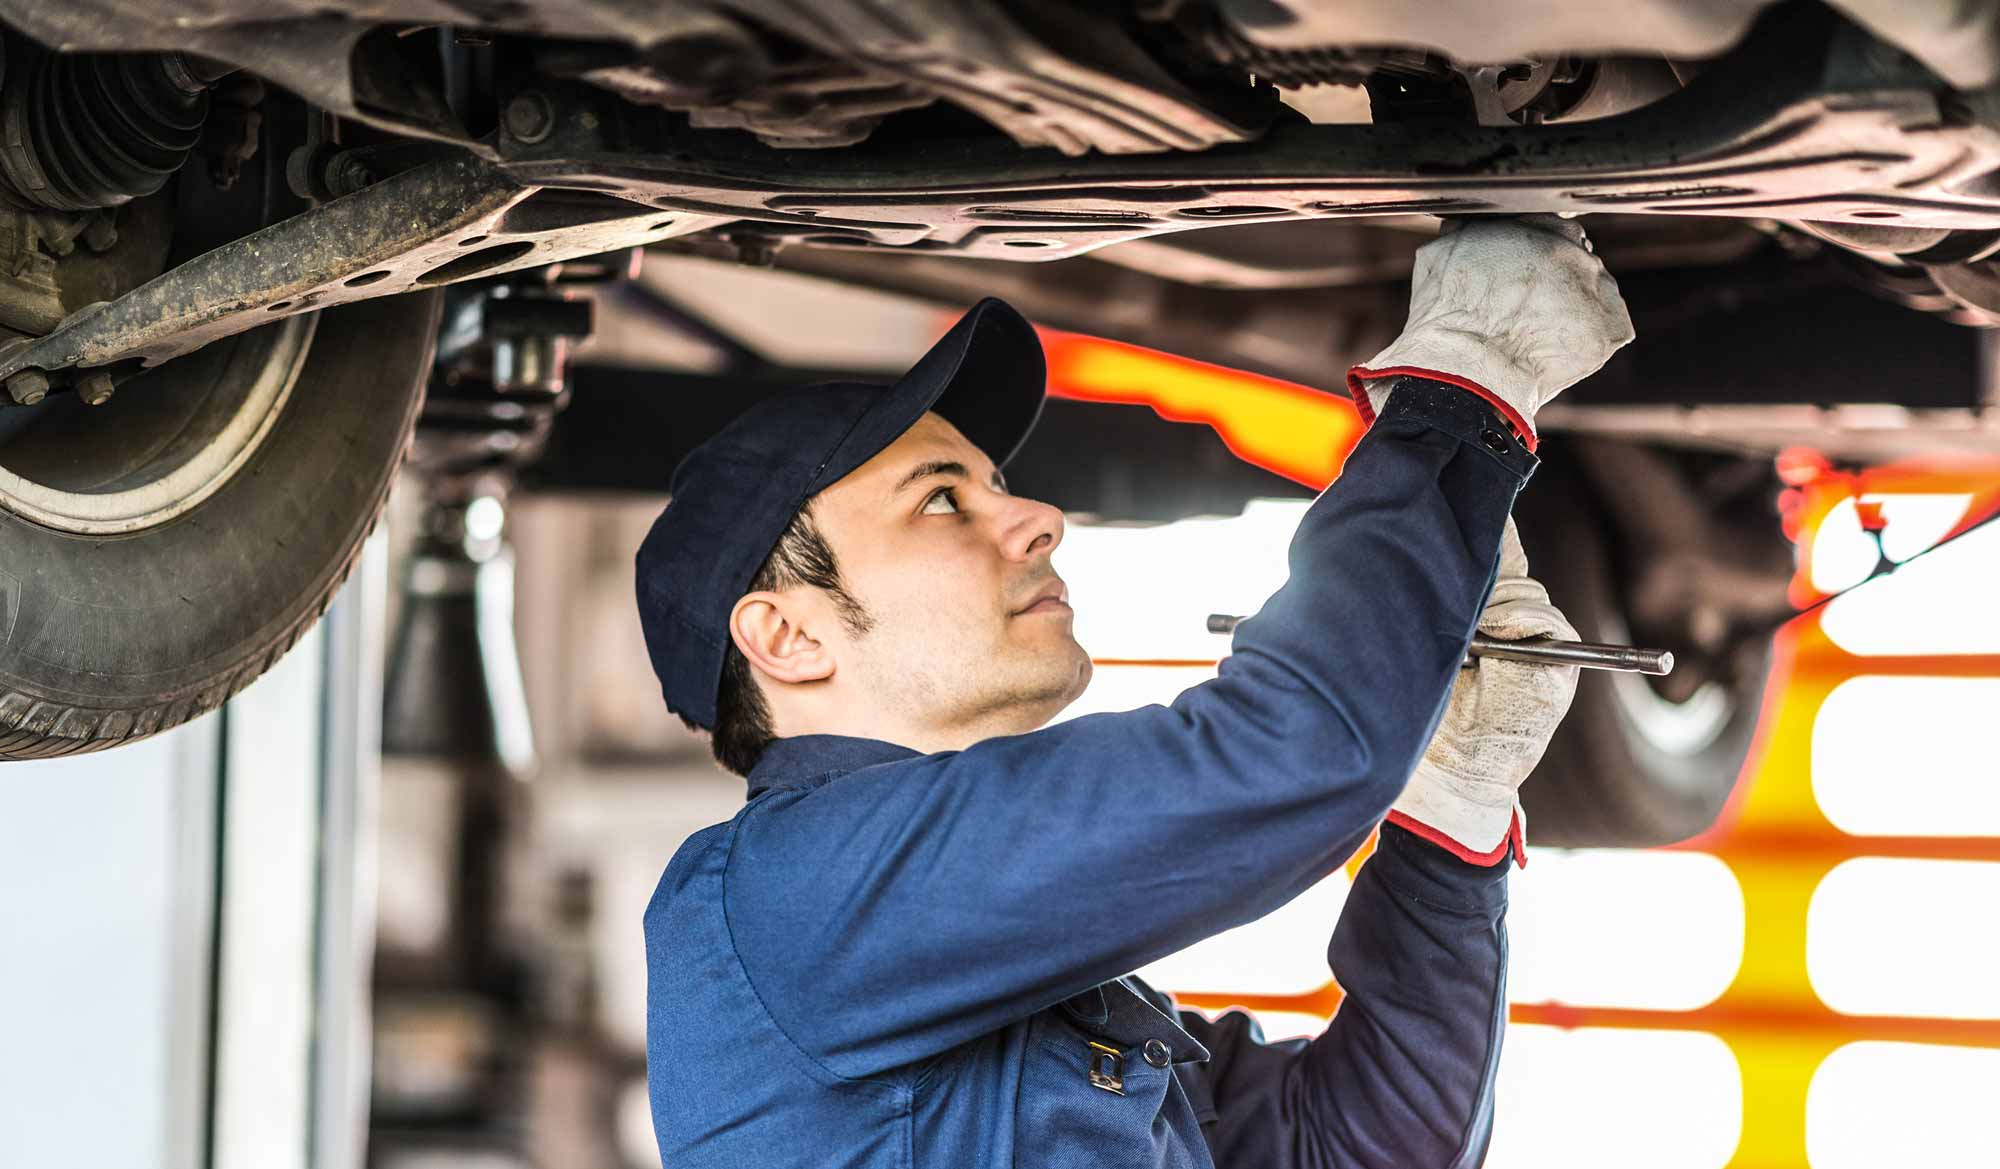 have a mechanic check the car